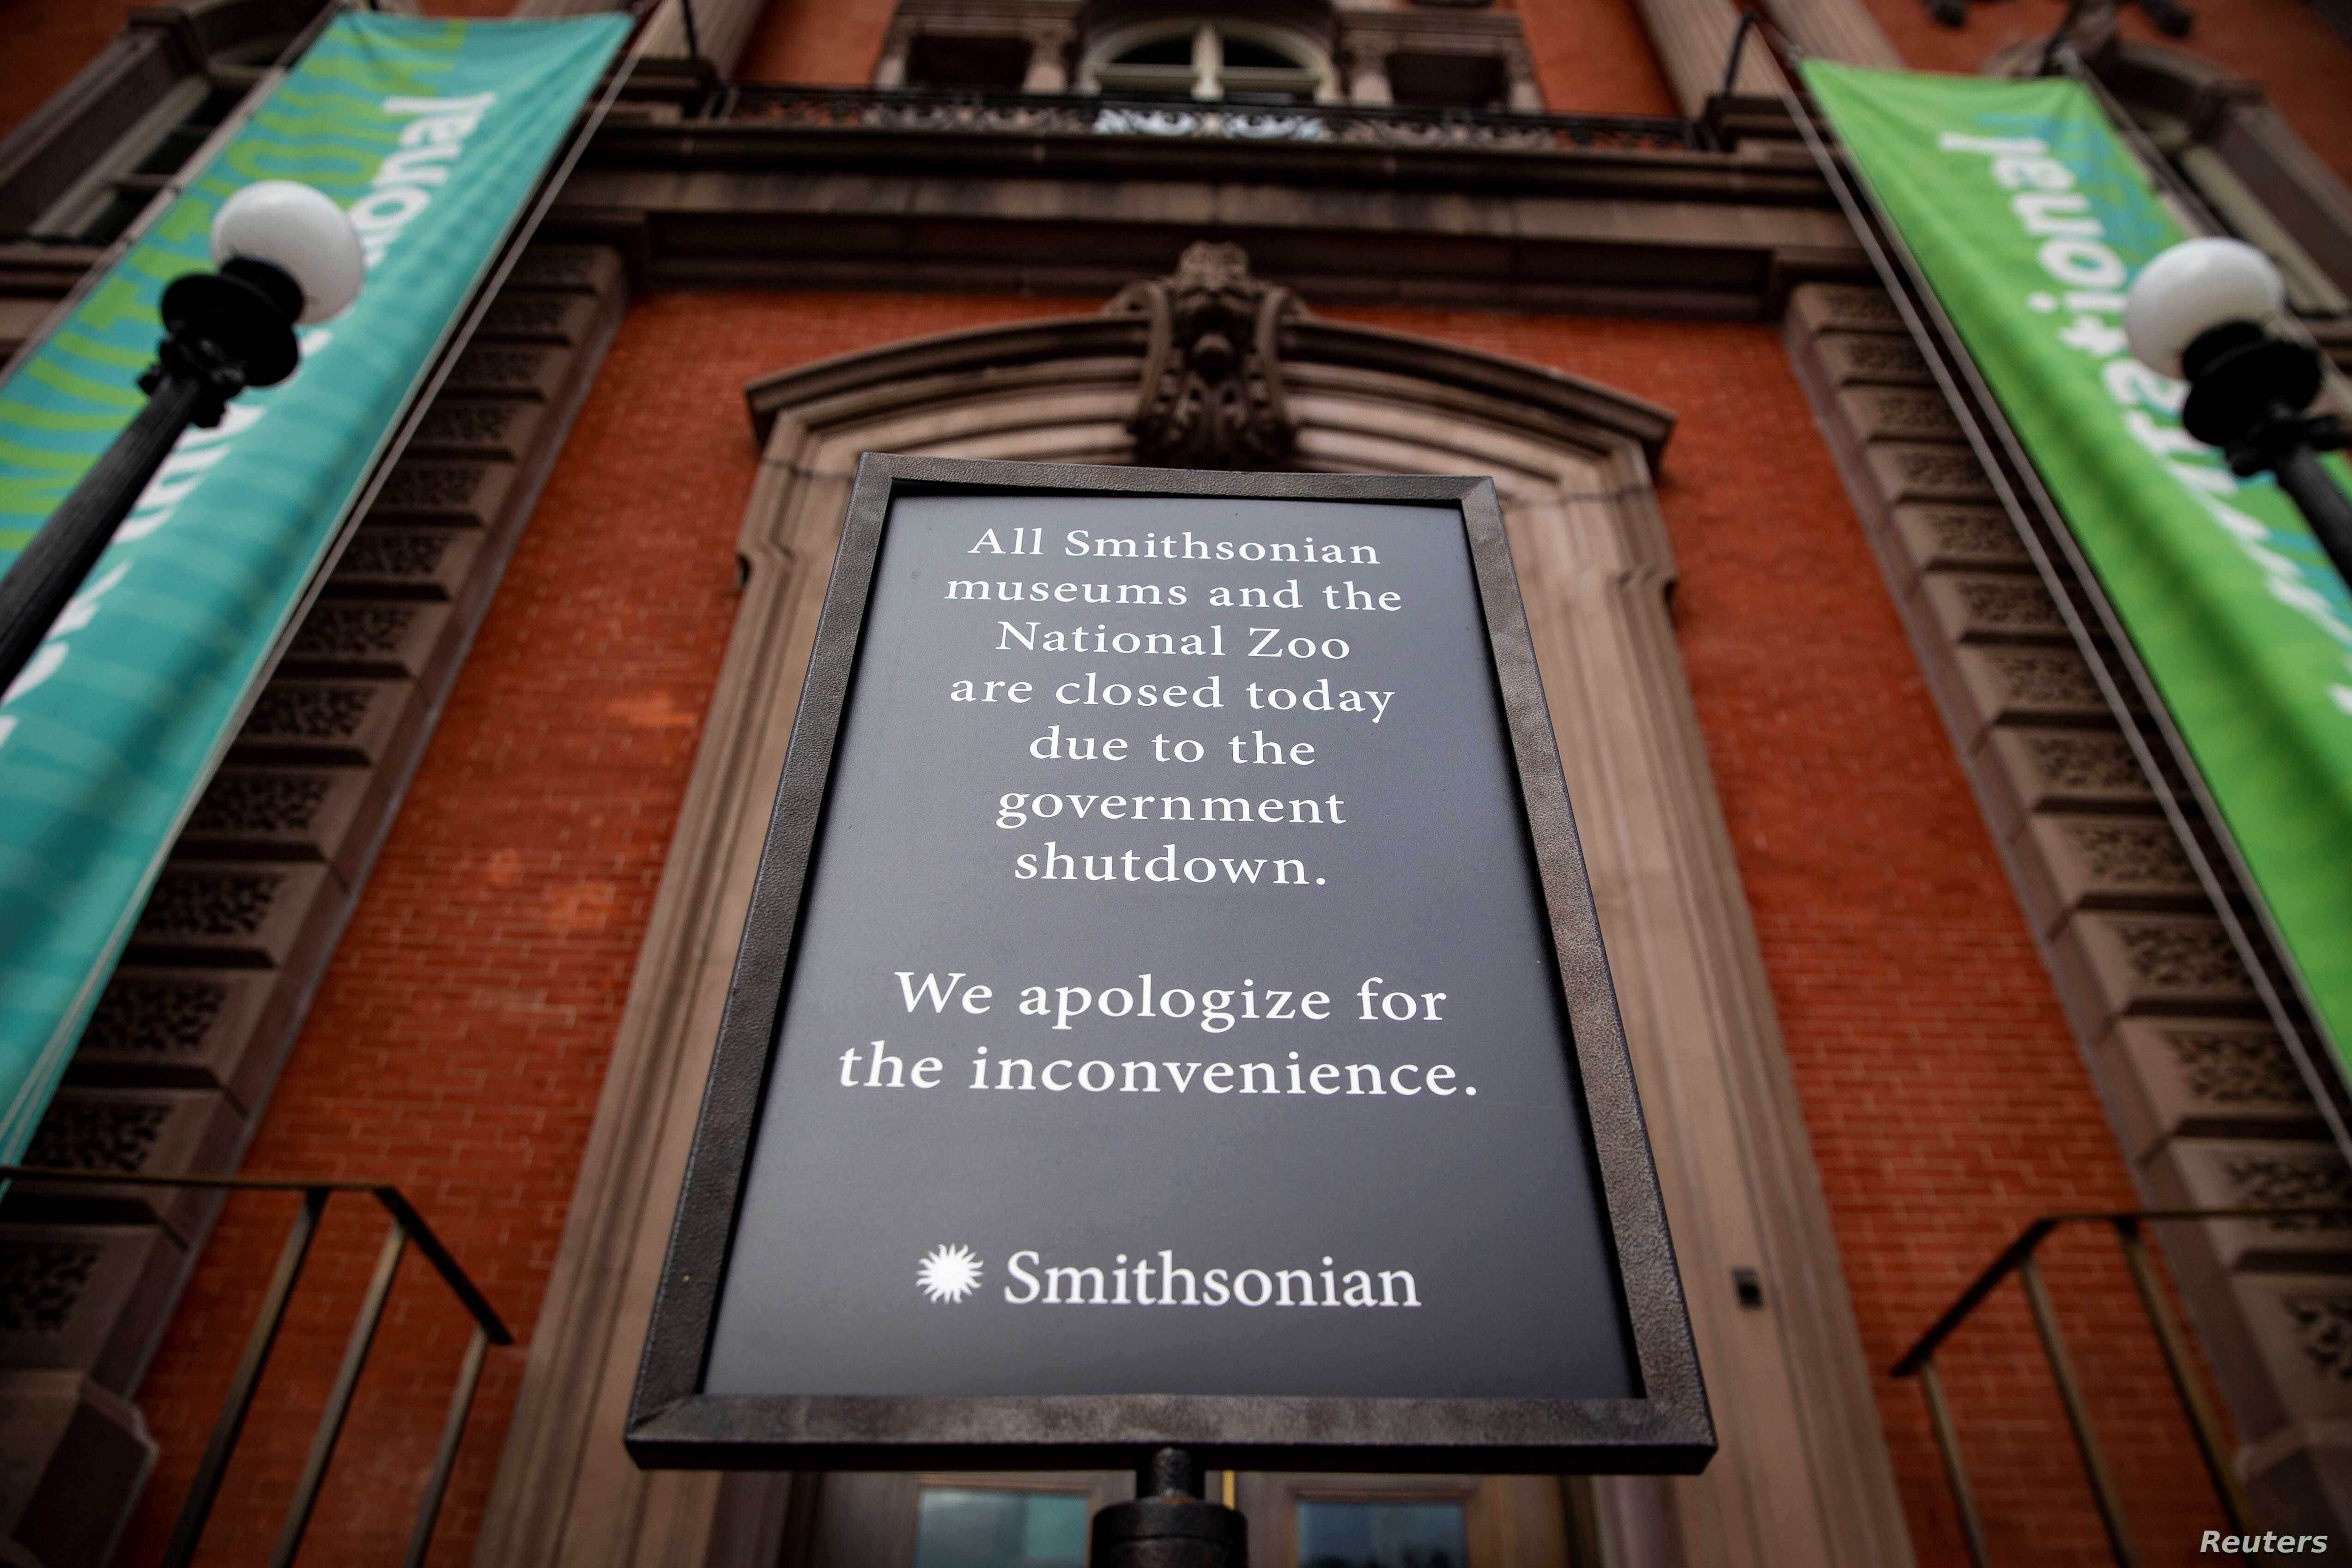 A sign outside of the Renwick Gallery stating that all Smithsonian museums are closed is seen on day 30 of a partial government shutdown, in Washington, U.S., Jan. 20, 2019.